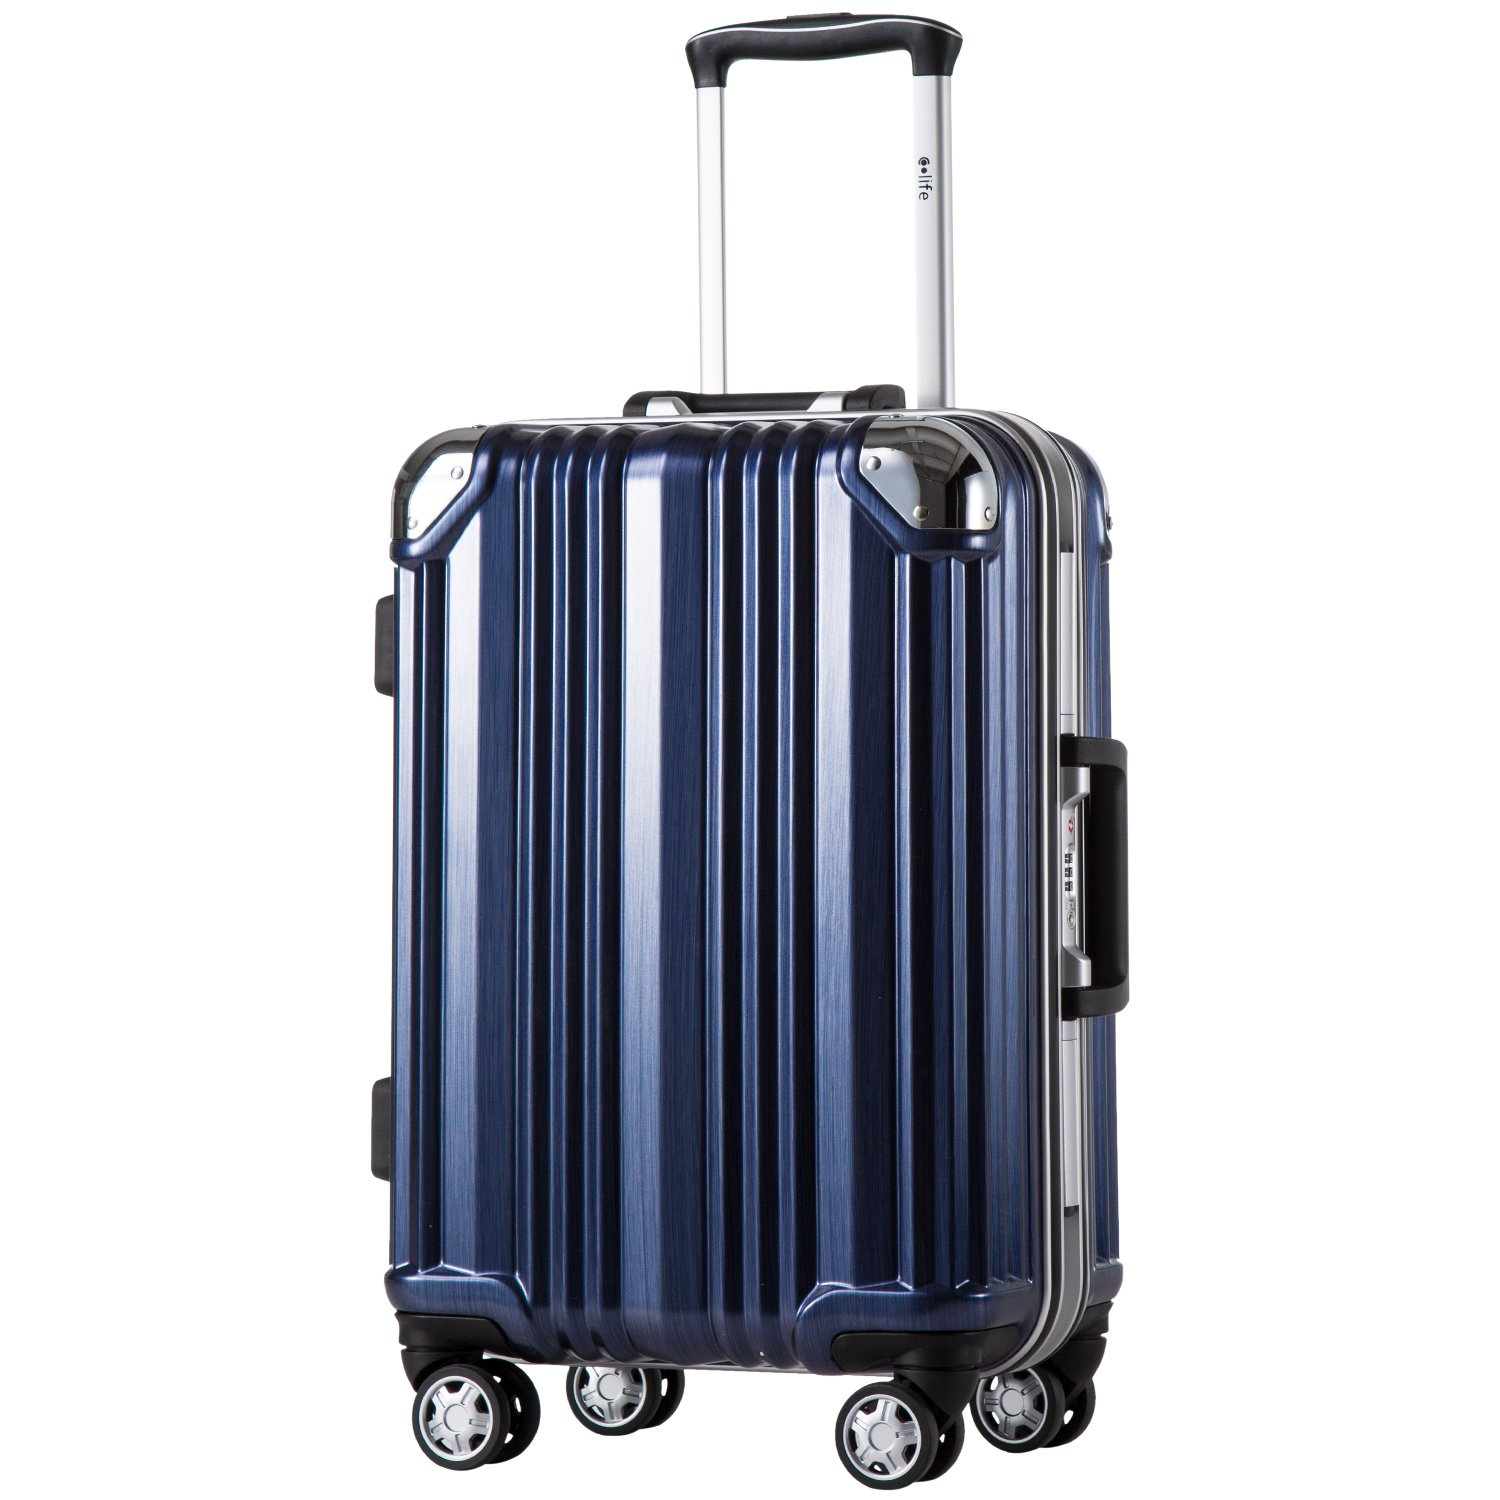 Coolife Luggage Aluminium Frame Suitcase with TSA Lock 100% PC (M(24in), Blue)